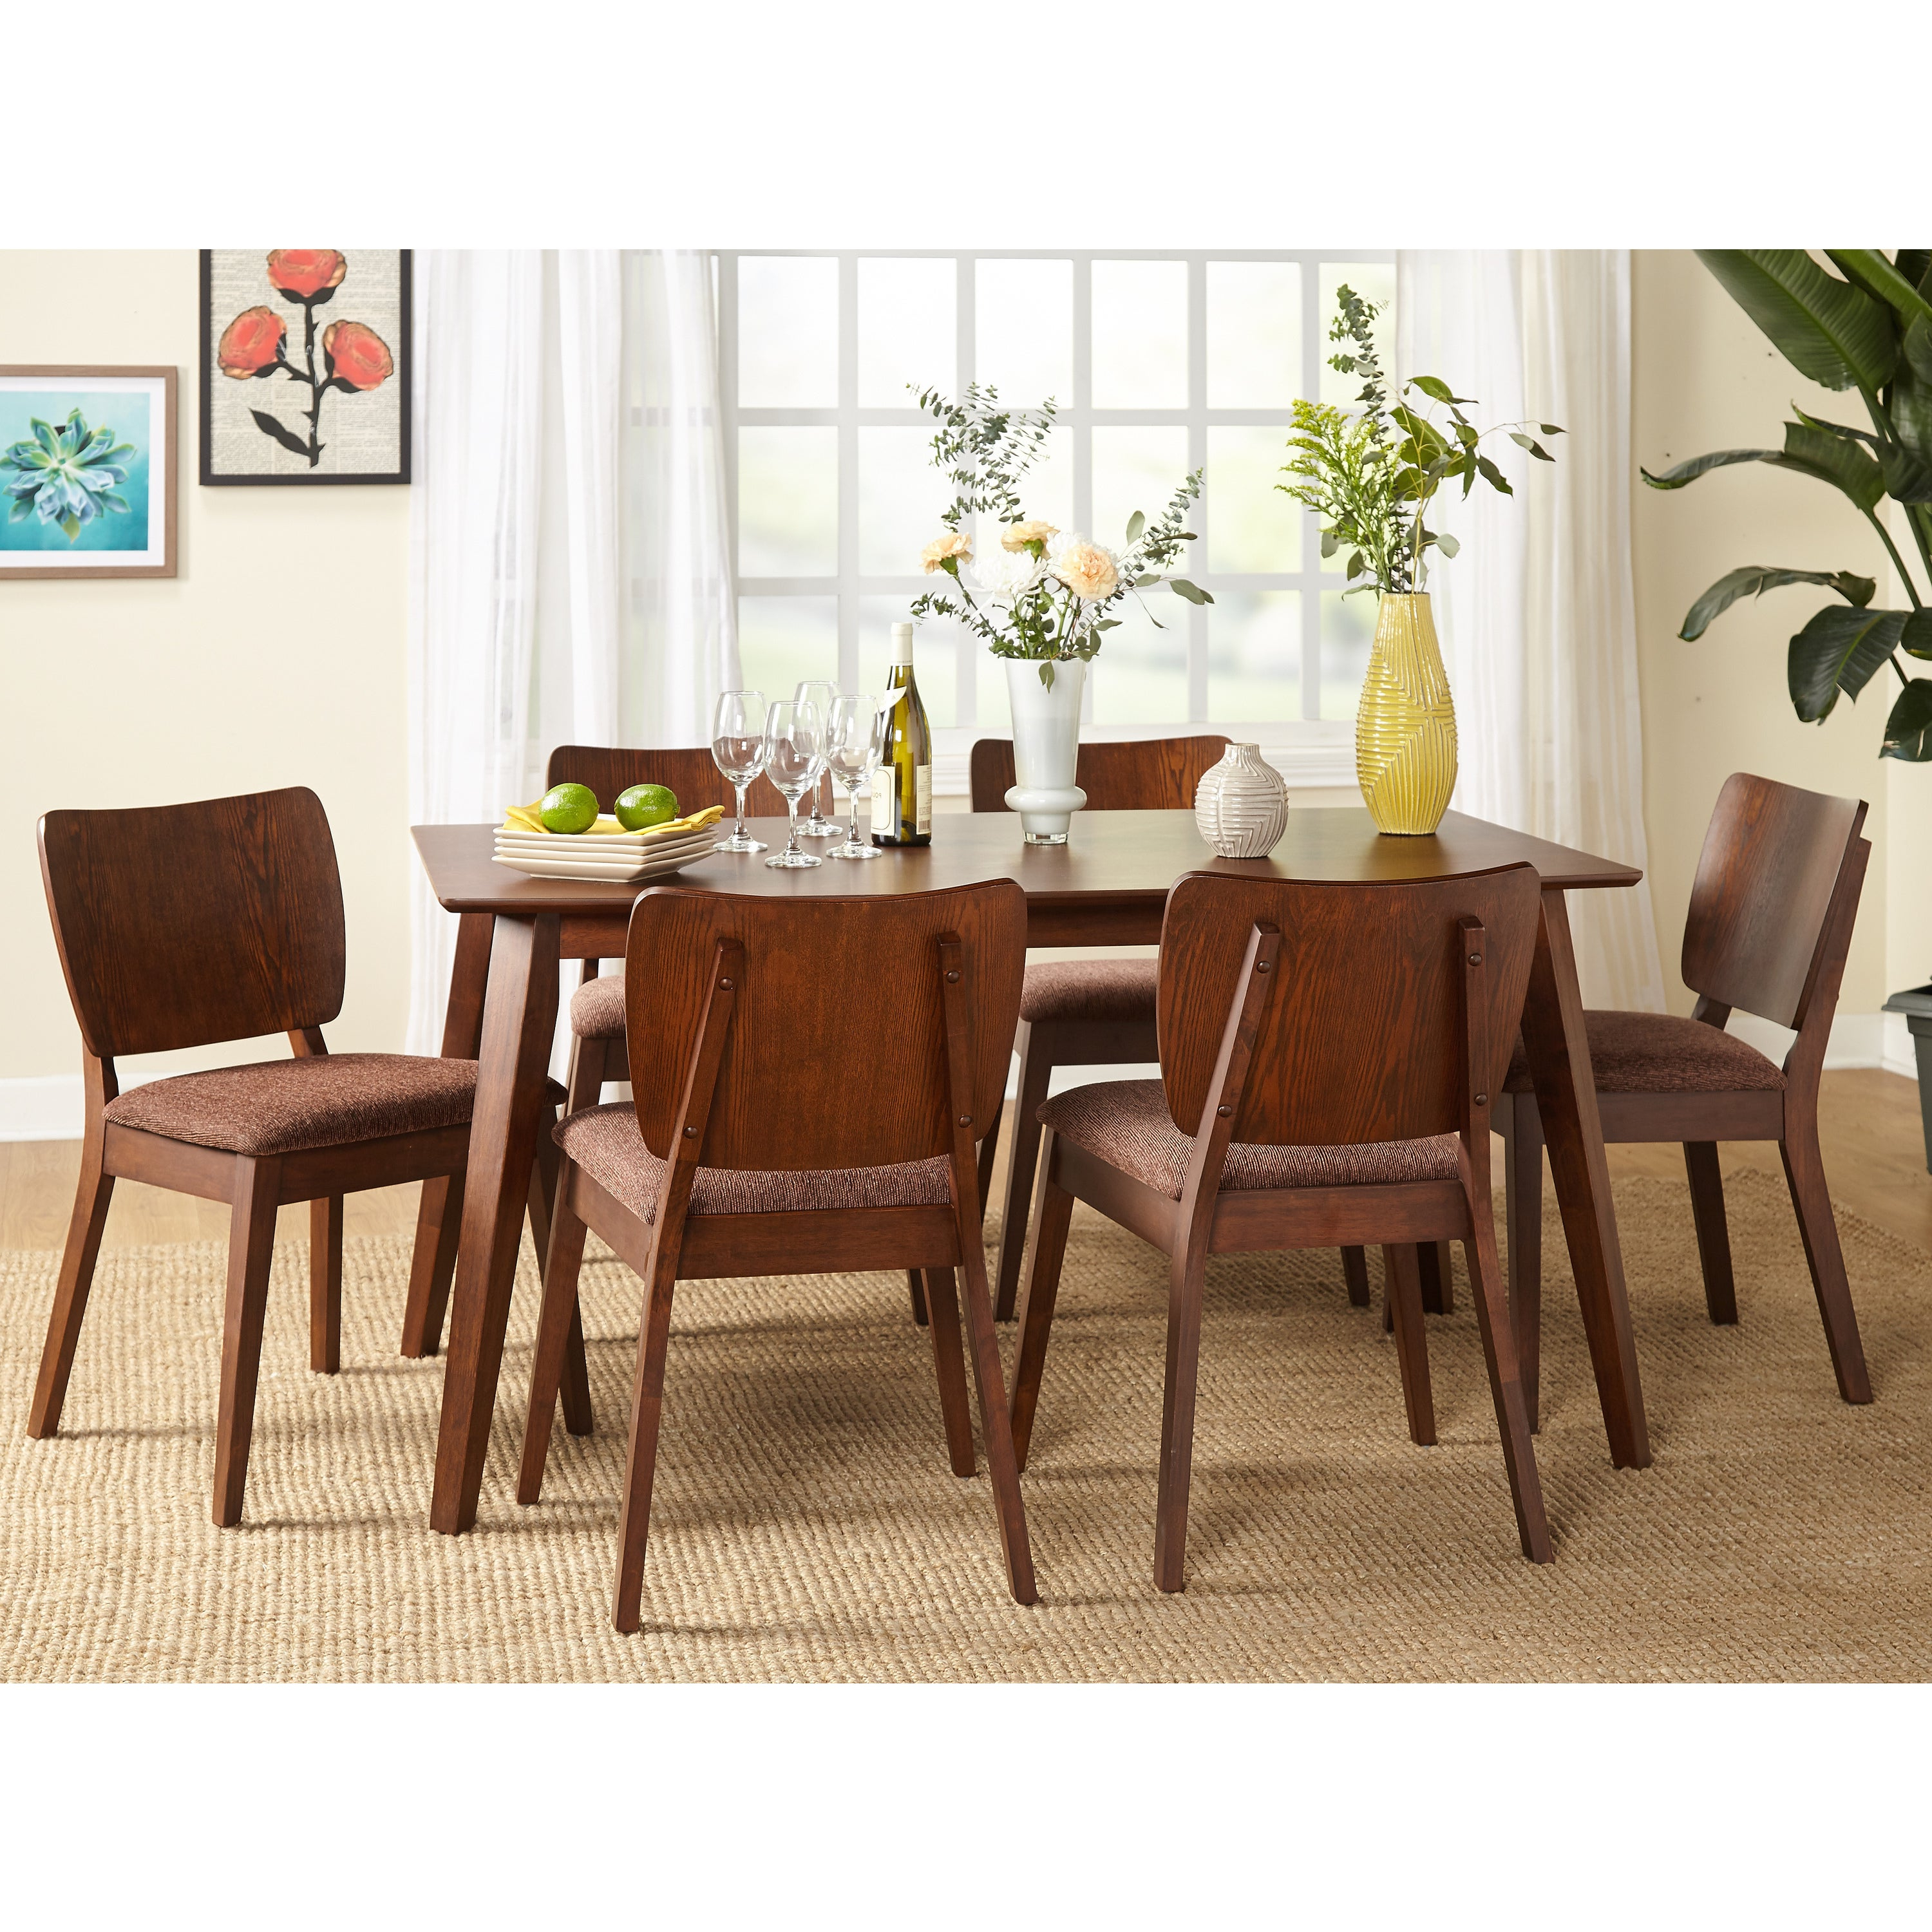 Buy 5 Piece Sets Kitchen & Dining Room Sets Online At Overstock In Most Up To Date West Hill Family Table 3 Piece Dining Sets (View 6 of 25)